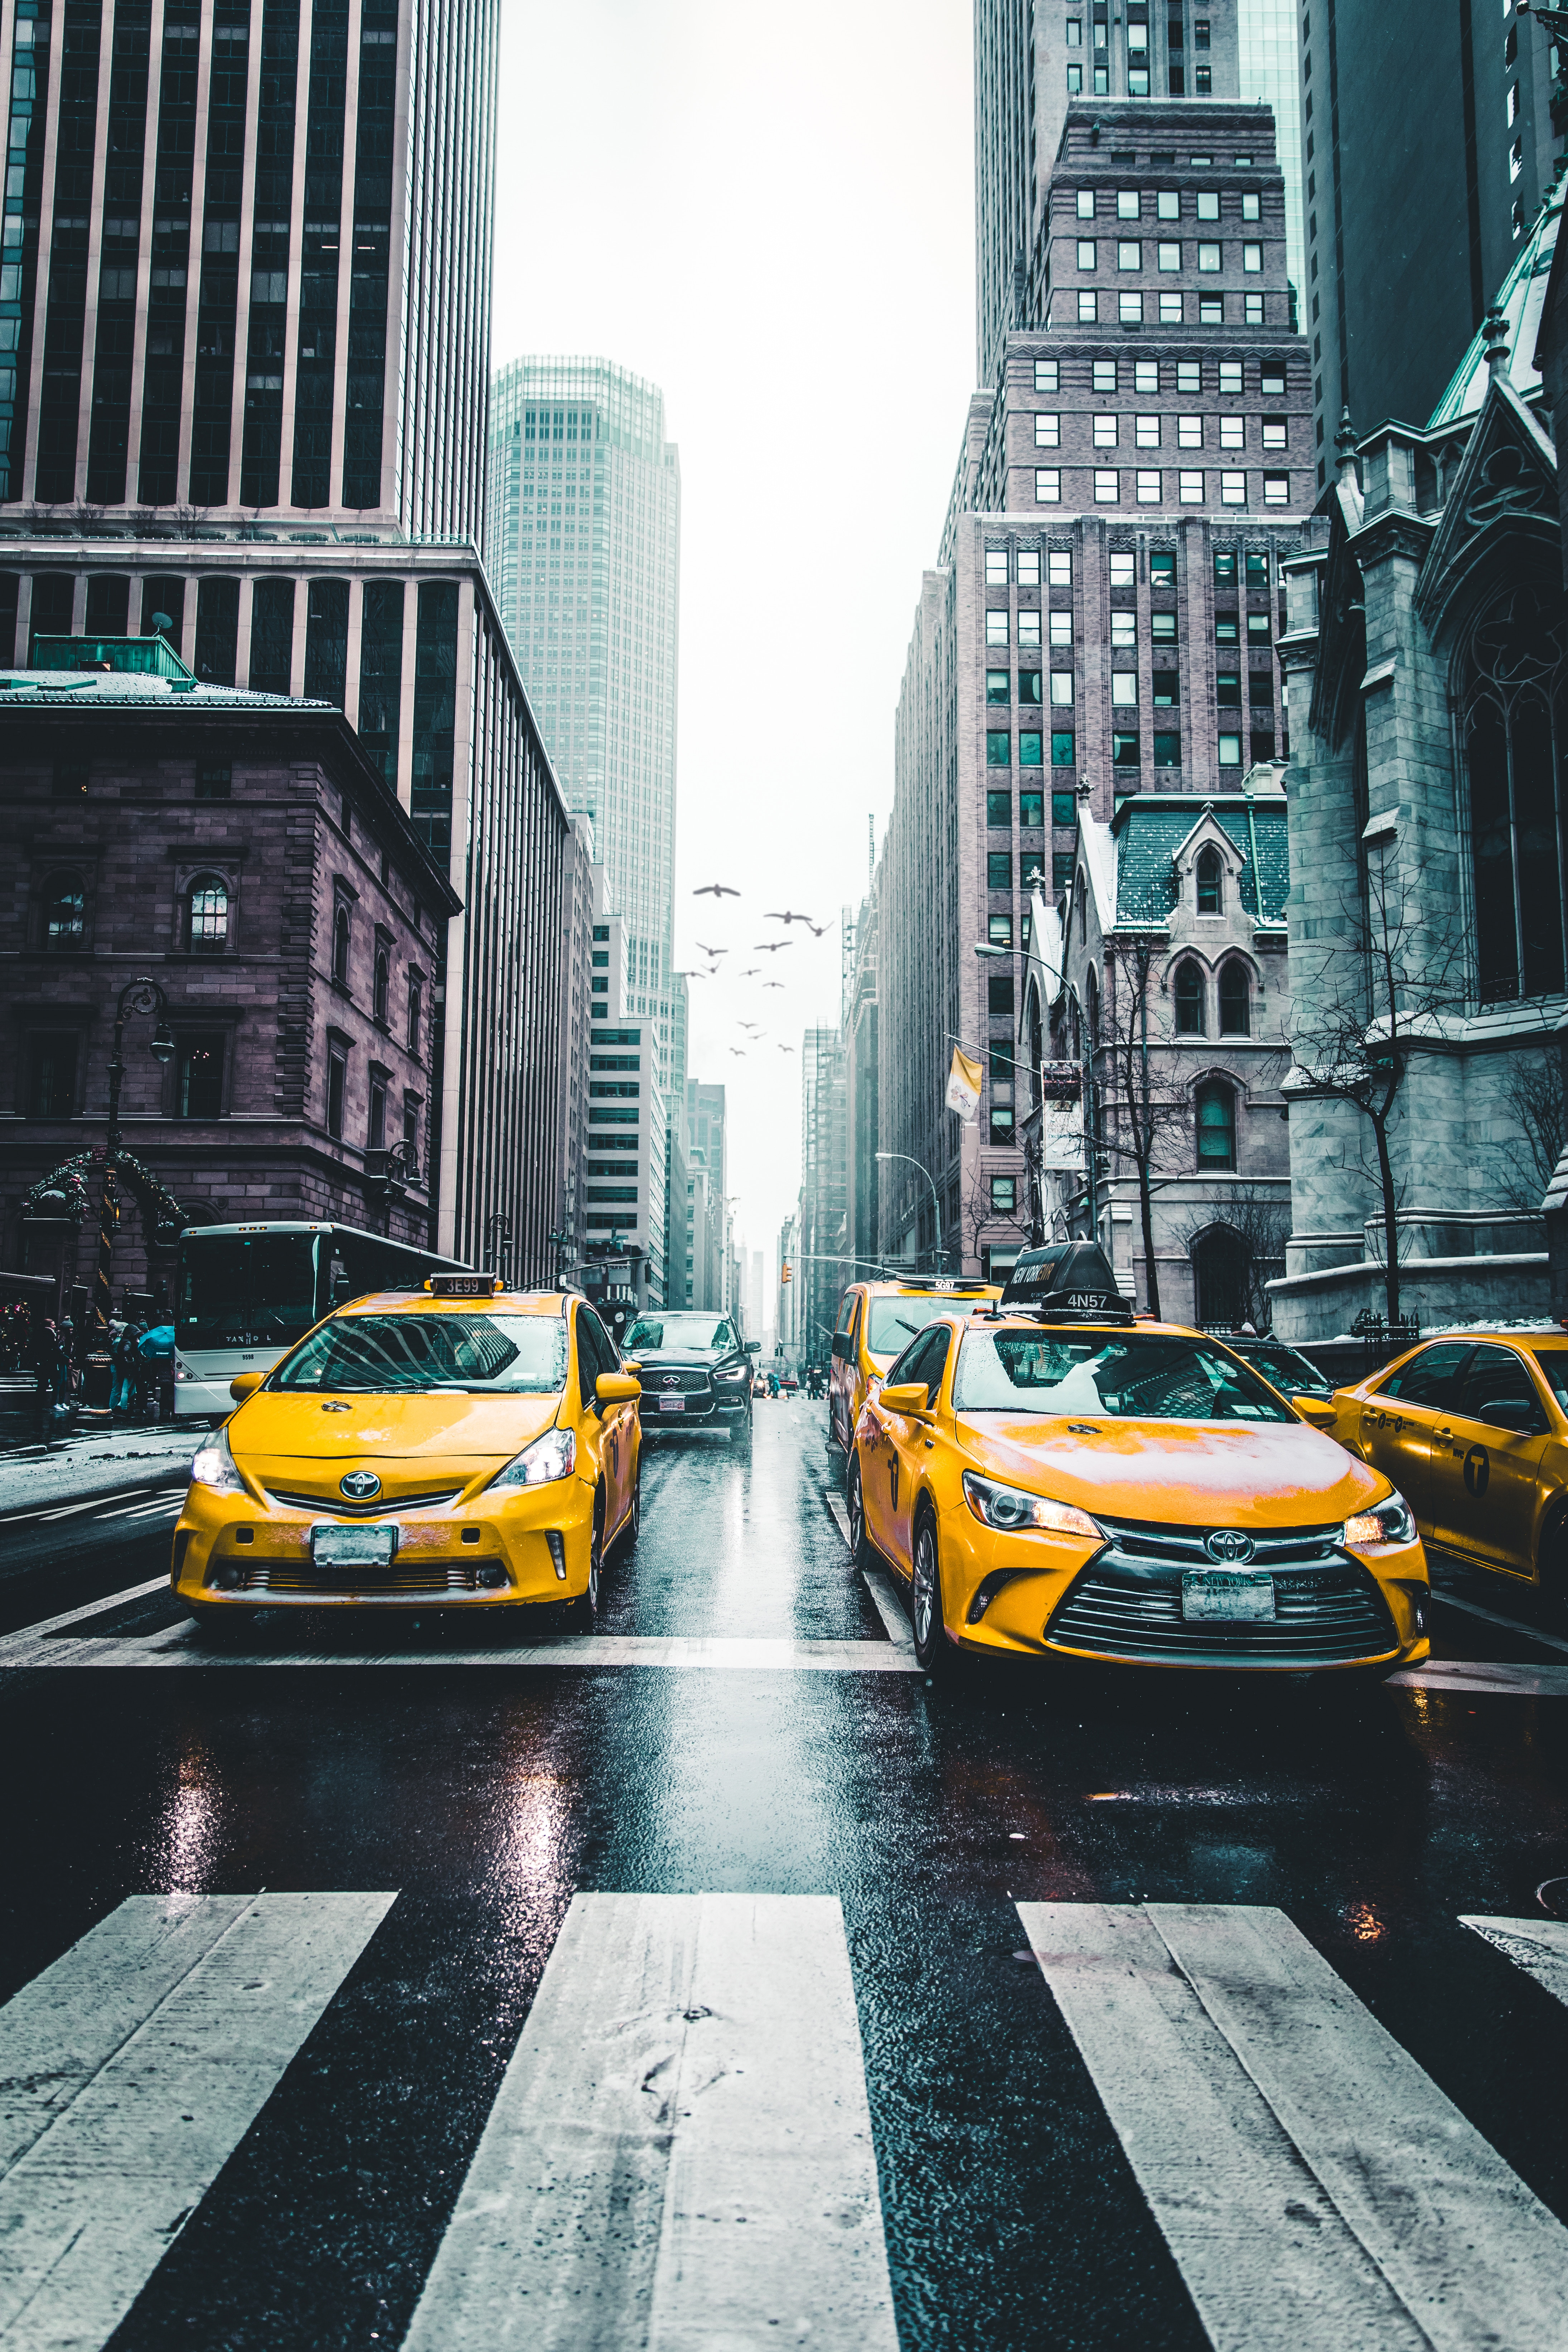 Fonds D Ecran 4380x6570 Taxi Voitures Usa Routes Ny Taxi